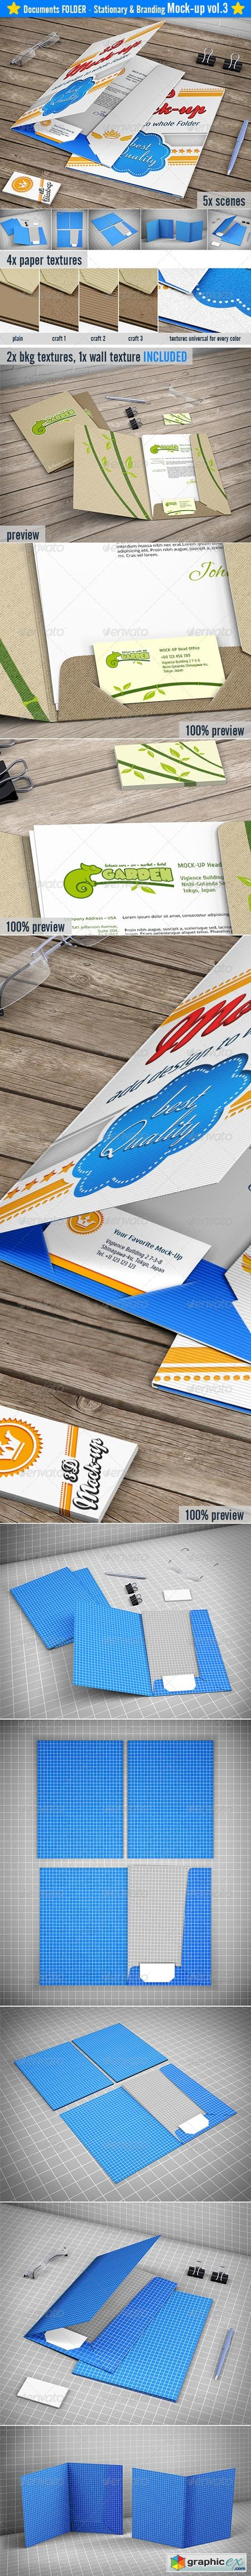 Stationery Branding Mock-up 8522228